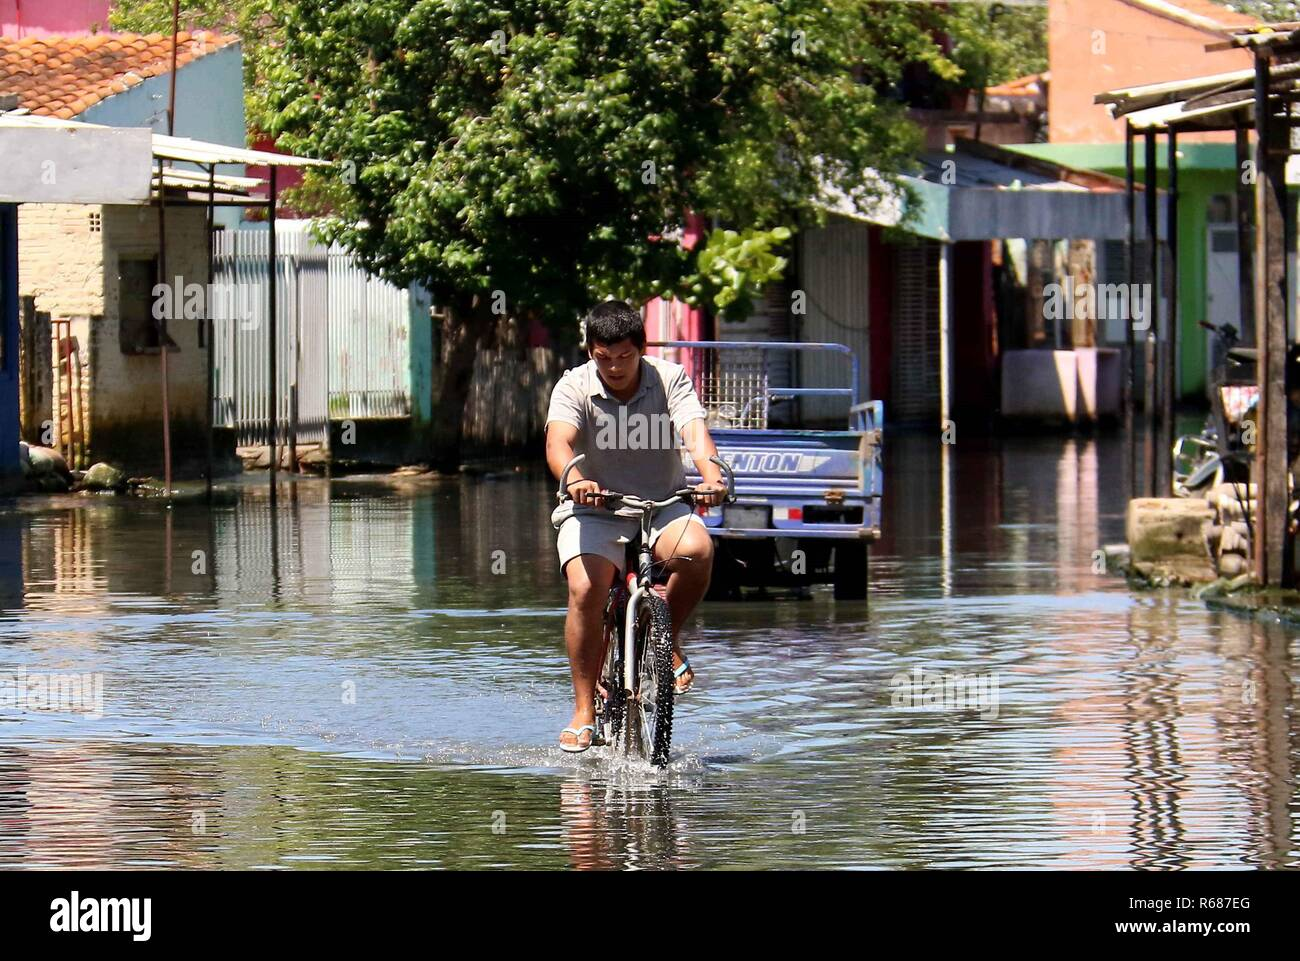 Asuncion, Paraguay. 04th Dec, 2018. A man rides a bike on a flooded street, in Asuncion, Paraguay, 04 December 2018. Numerous inhabitants of the neighborhood known as 'Banado Sur' are forced to live in unhygienic conditions due to the stagnant water of the floods caused by the rise of the Paraguay river, which have forced 7,500 families to evacuate their homes. Credit: Andres Cristaldo/EFE/Alamy Live News - Stock Image